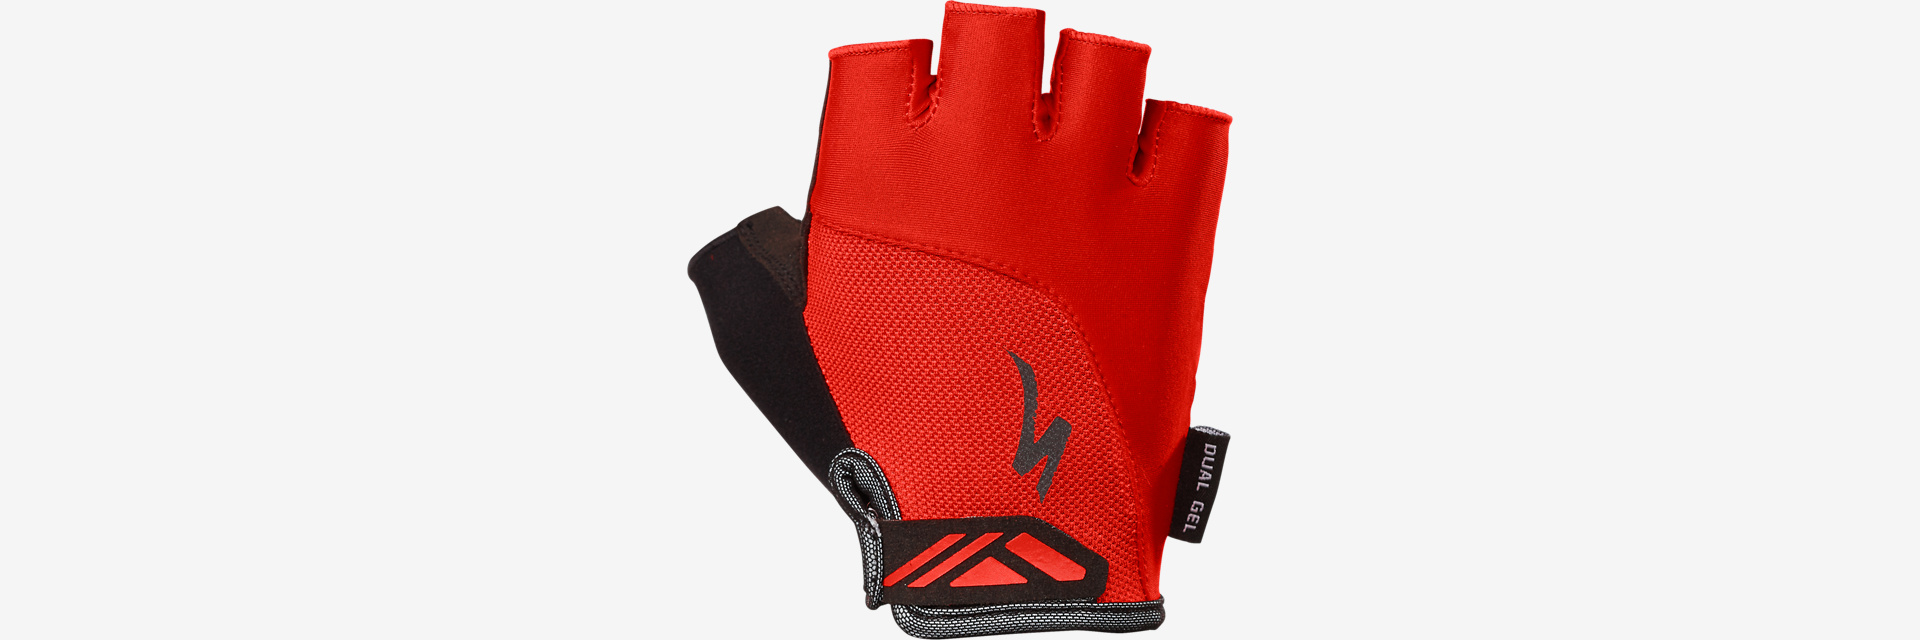 Specialized W BG Dual Sport Glove SF, Red